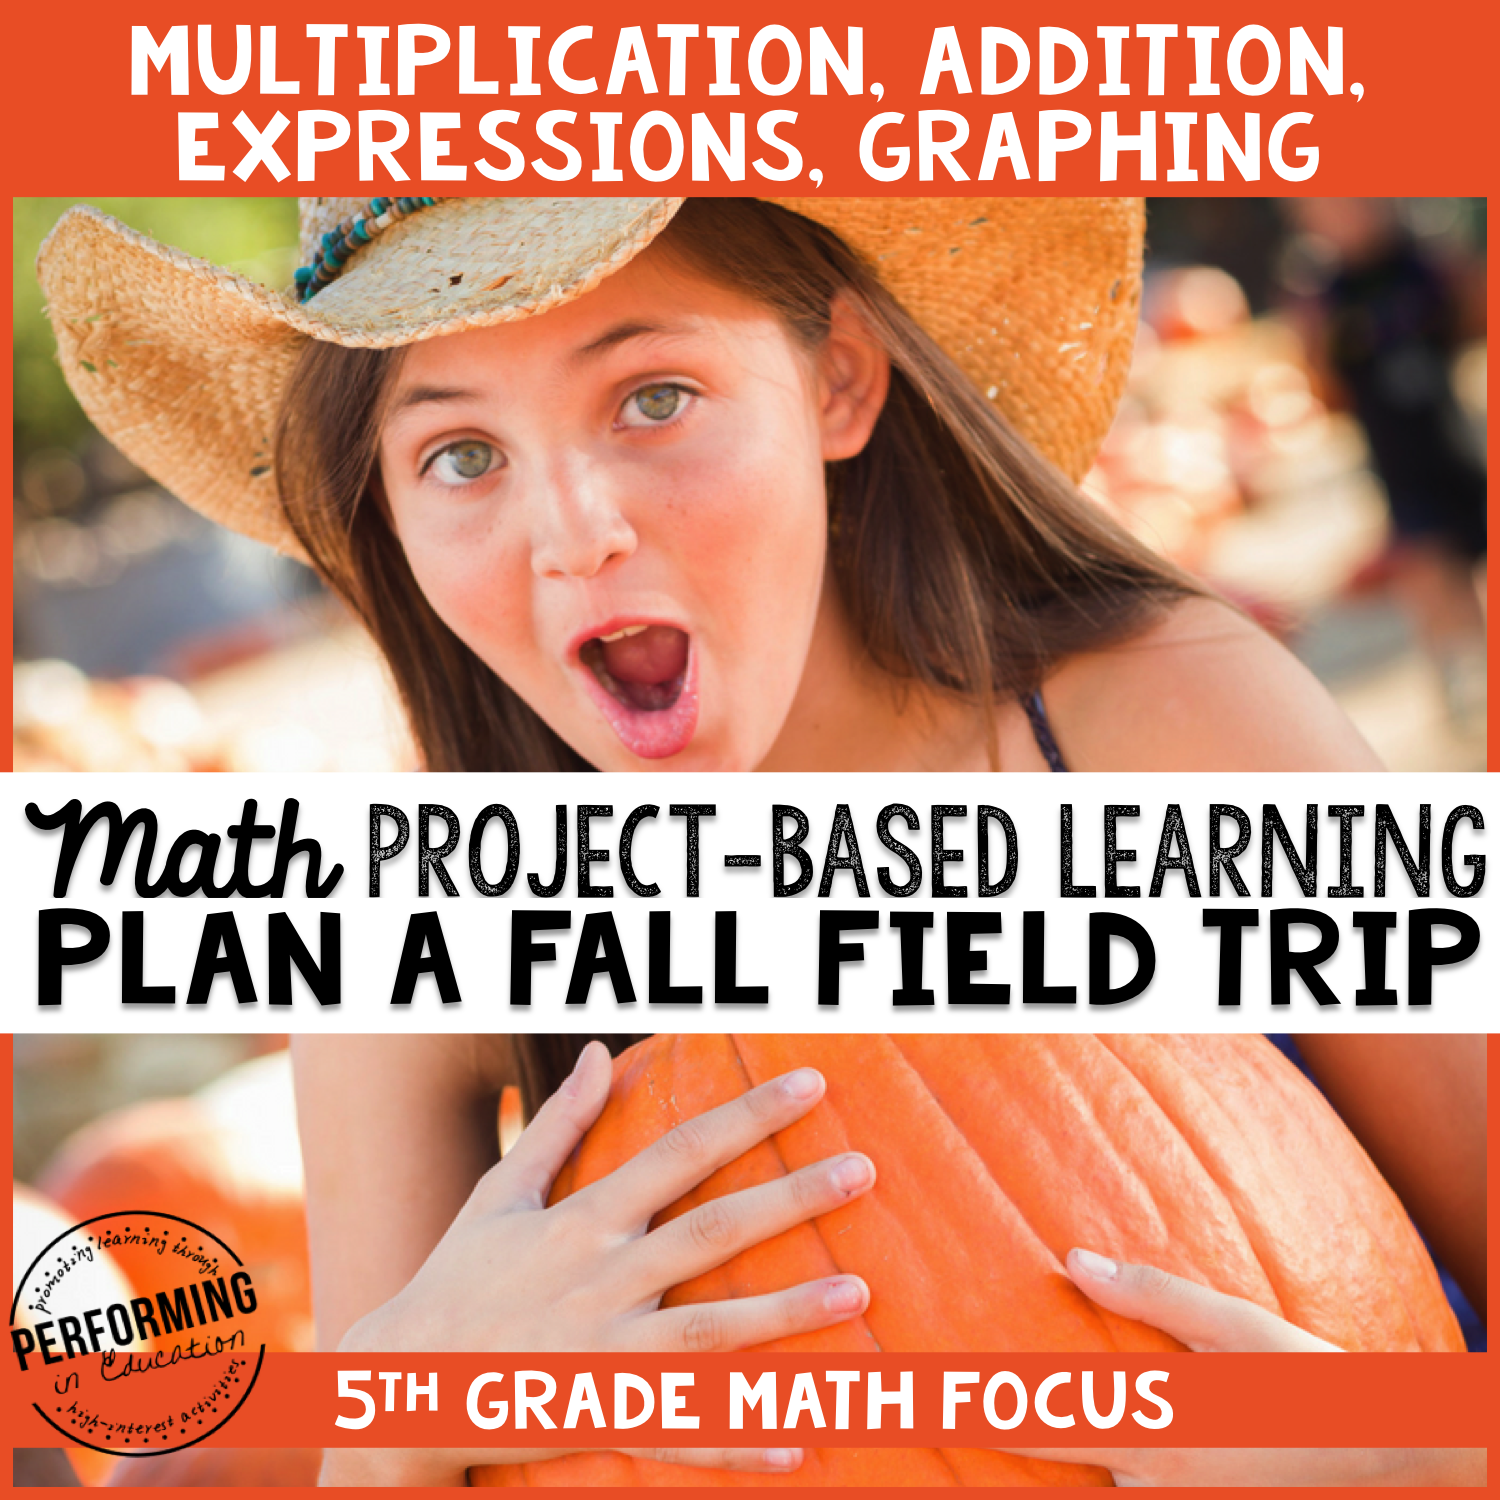 5th Grade Project-based Learning: Plan a Fall Field Trip